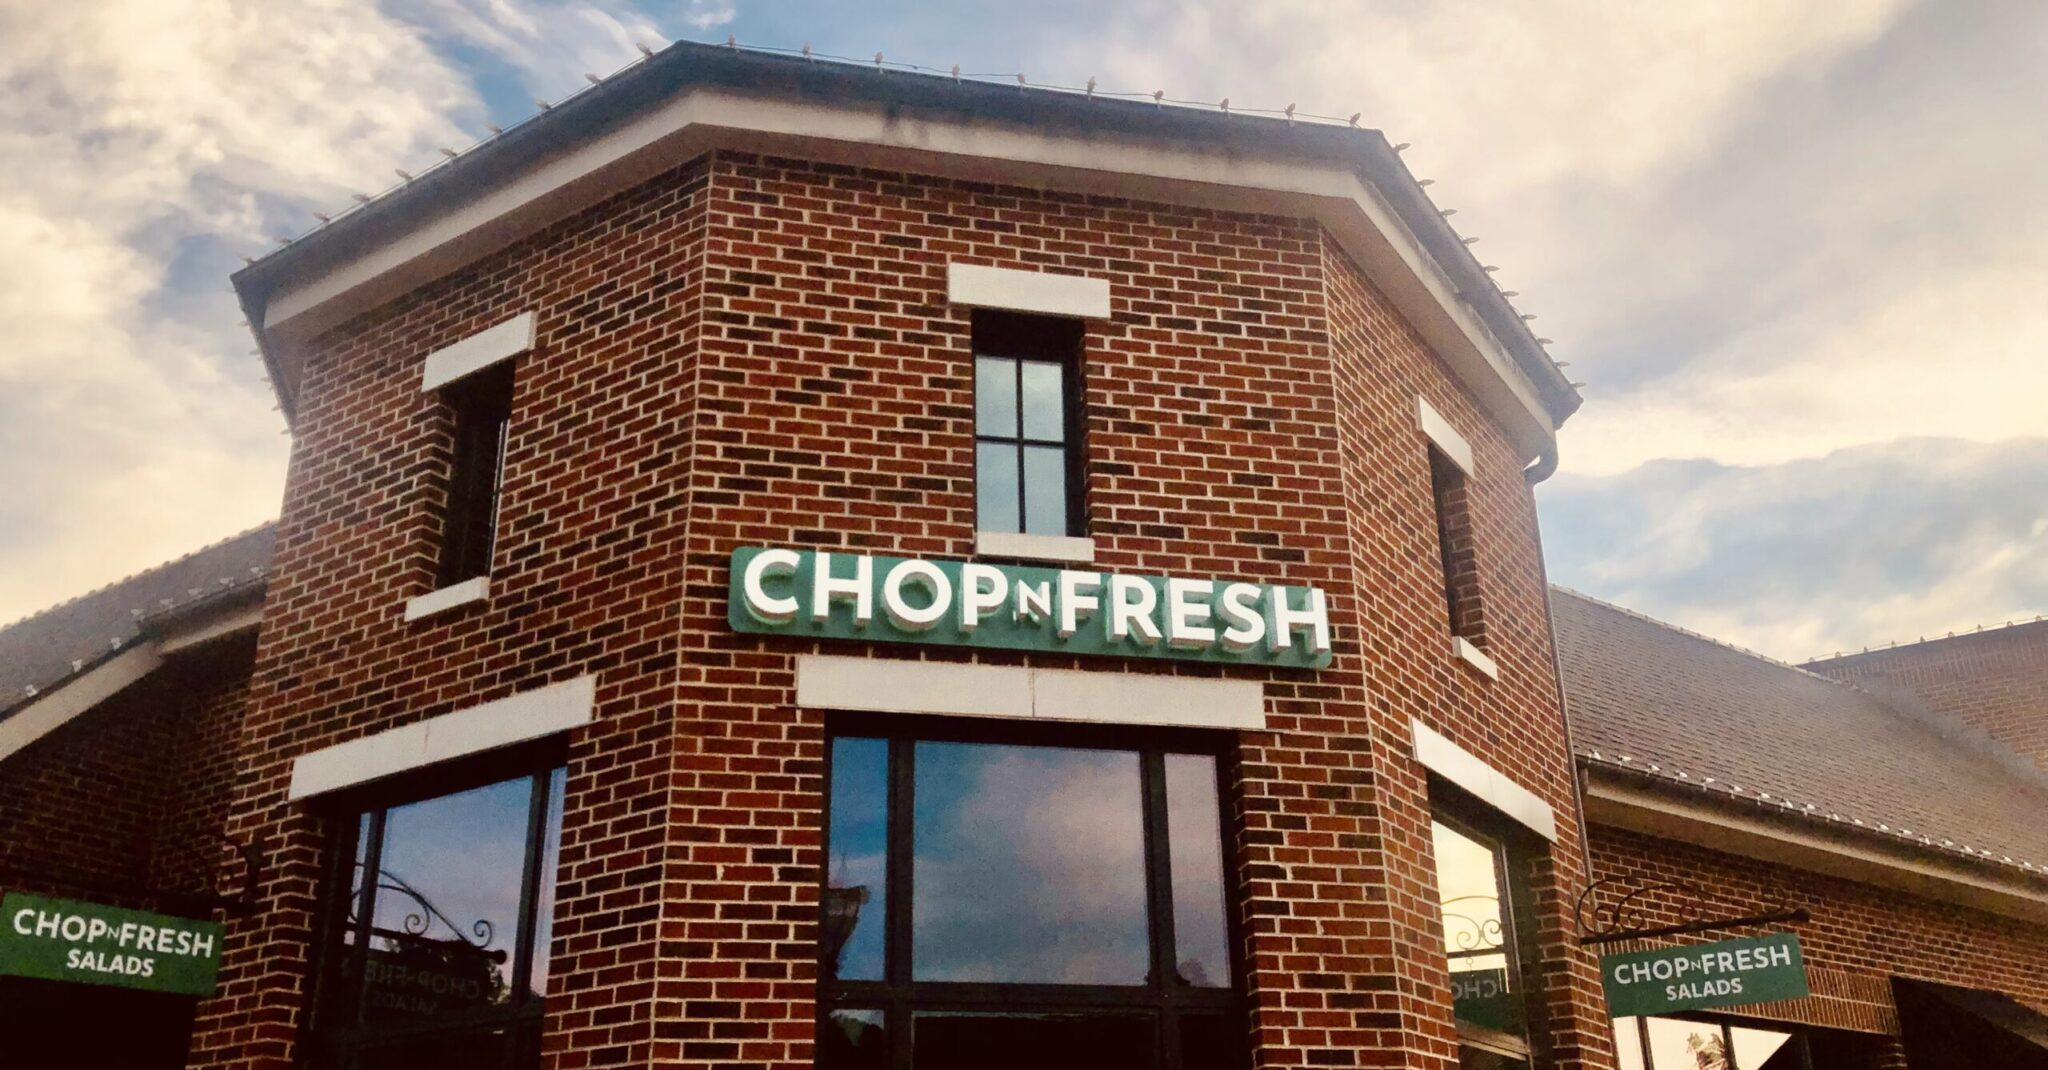 Chop N Fresh to open first Birmingham area location in mid-November